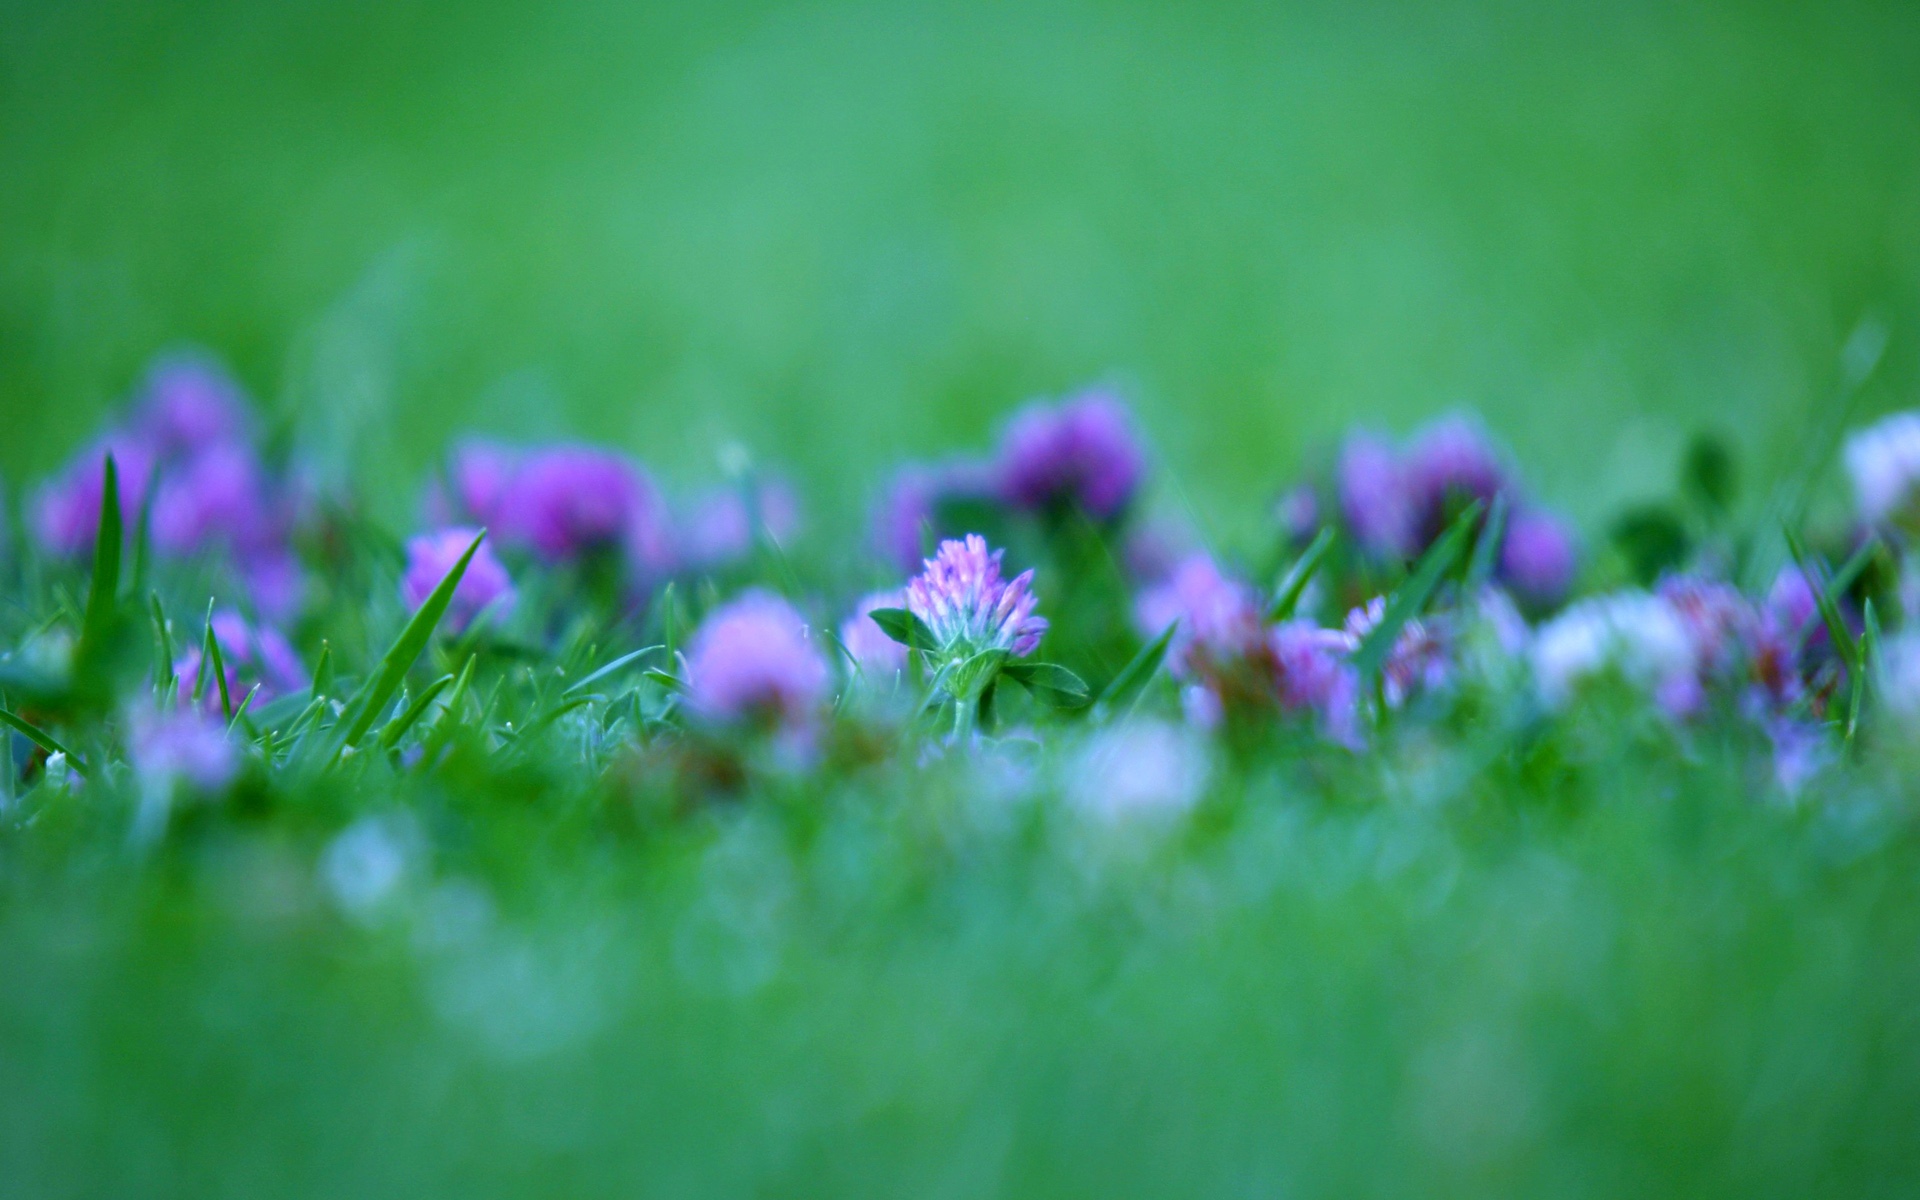 Green and Purple Abstract Flowers - Wallpaper #43436